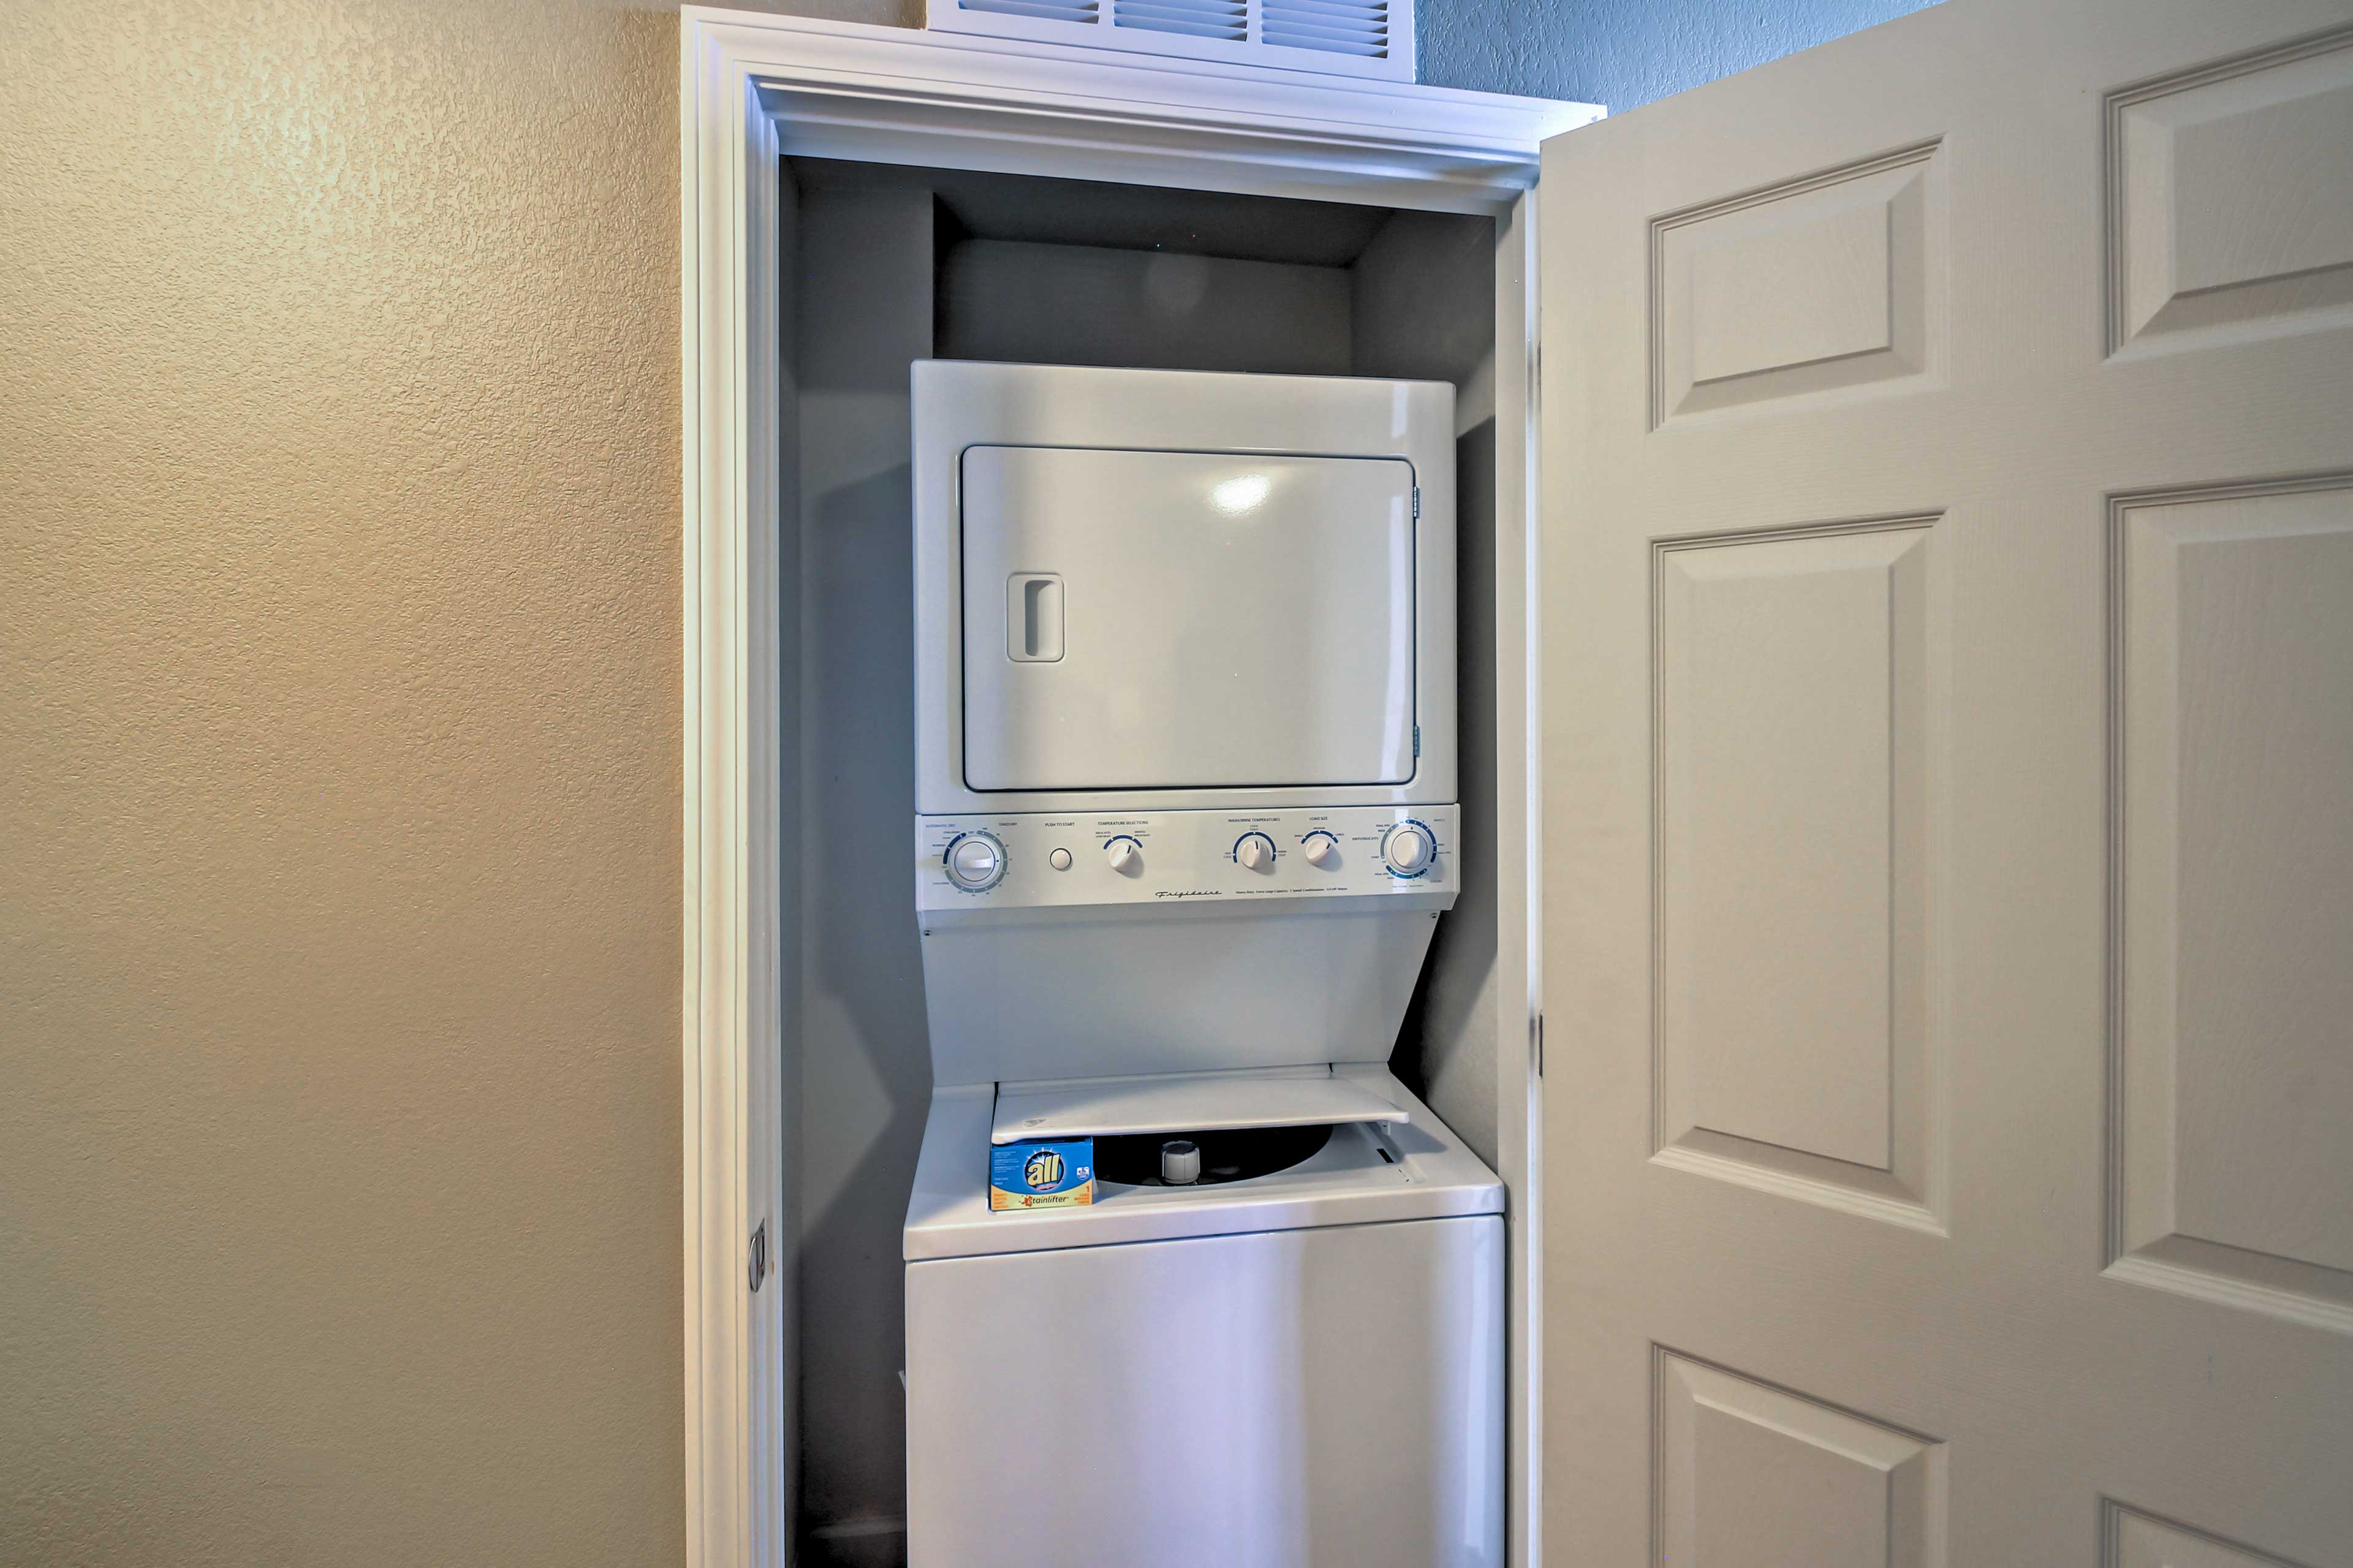 Keep your clothes clean during your vacation with the in-unit laundry machines.